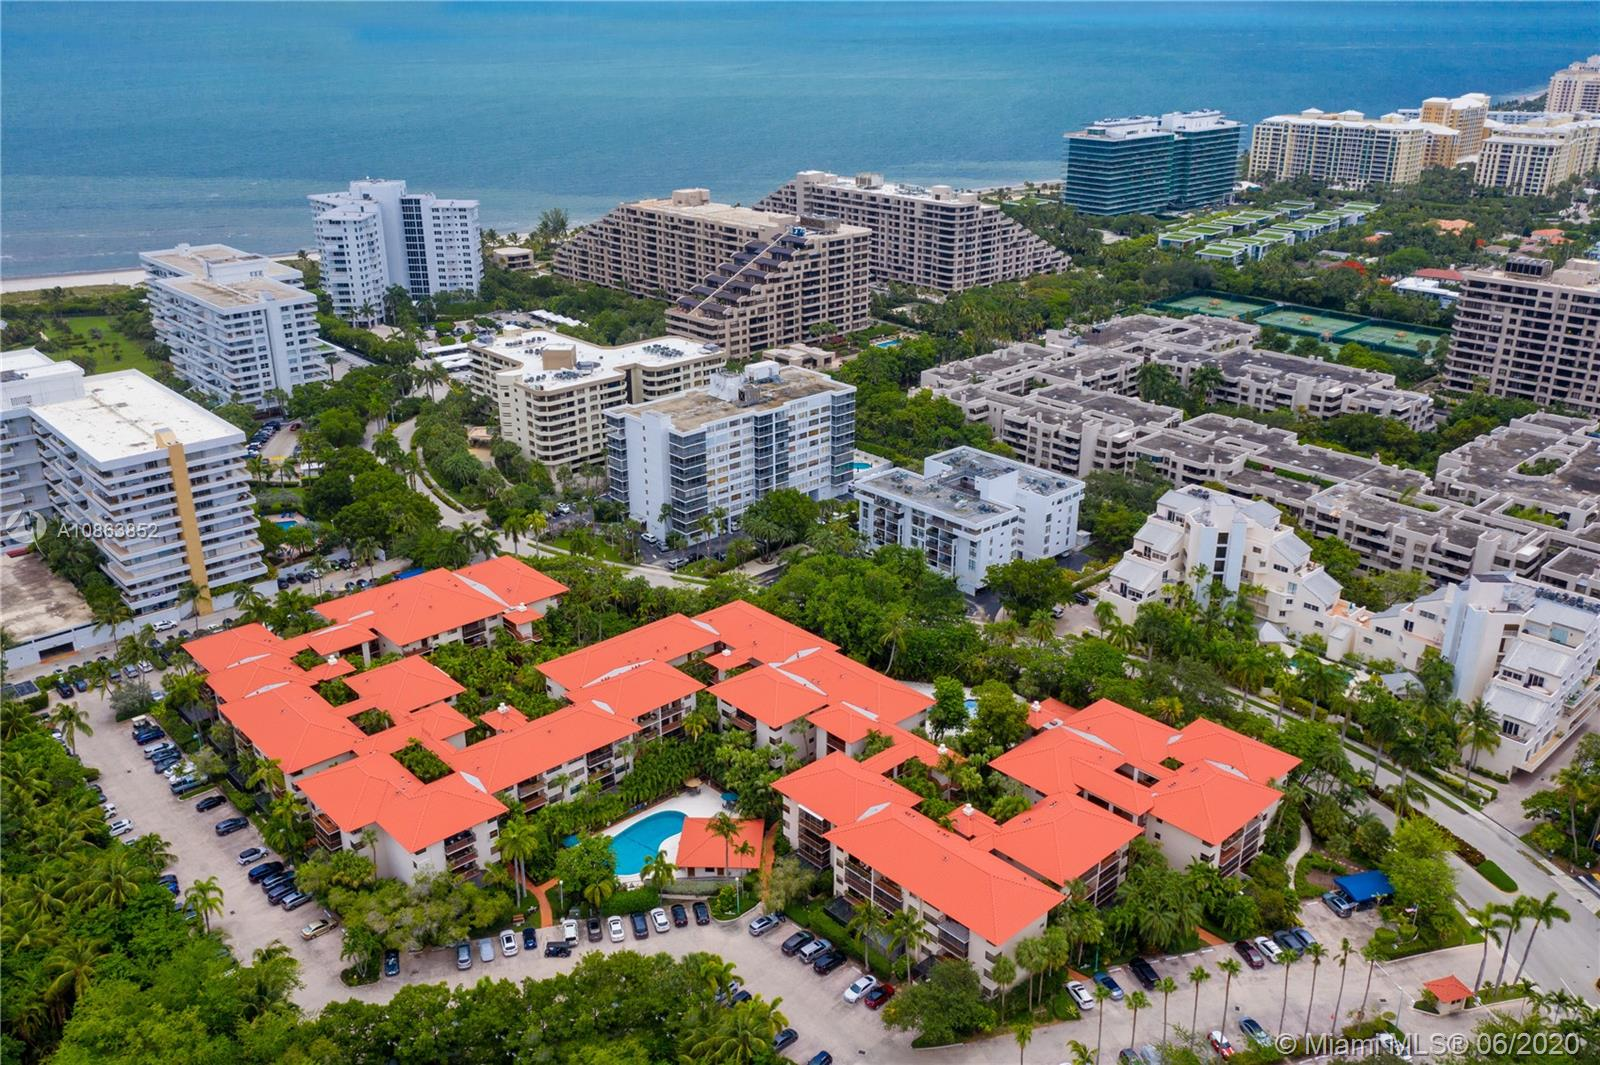 Ocean Village Condominium, walk to the beach! Located at the entrance of our island, with easy in and out access. Gated, security gate. Two pools. One parking space with plenty of guests/second parking facility. Unit overlooks pool area. Located in the most secluded area of the complex. With green views and pool view. The building offers a breezy and nice feeling. walk among gardens and waterfalls. Unit has 1450 sq.ft. Two bedrooms, two bathrooms. PLUS DEN.that can be used as an office, washer and dryer inside the uit. The unit is in original condition but can be easily upgraded. location is excellent , with east exposure. Bring offers. show it with confidence.Tuesday and Thursday are the preferred showing days.